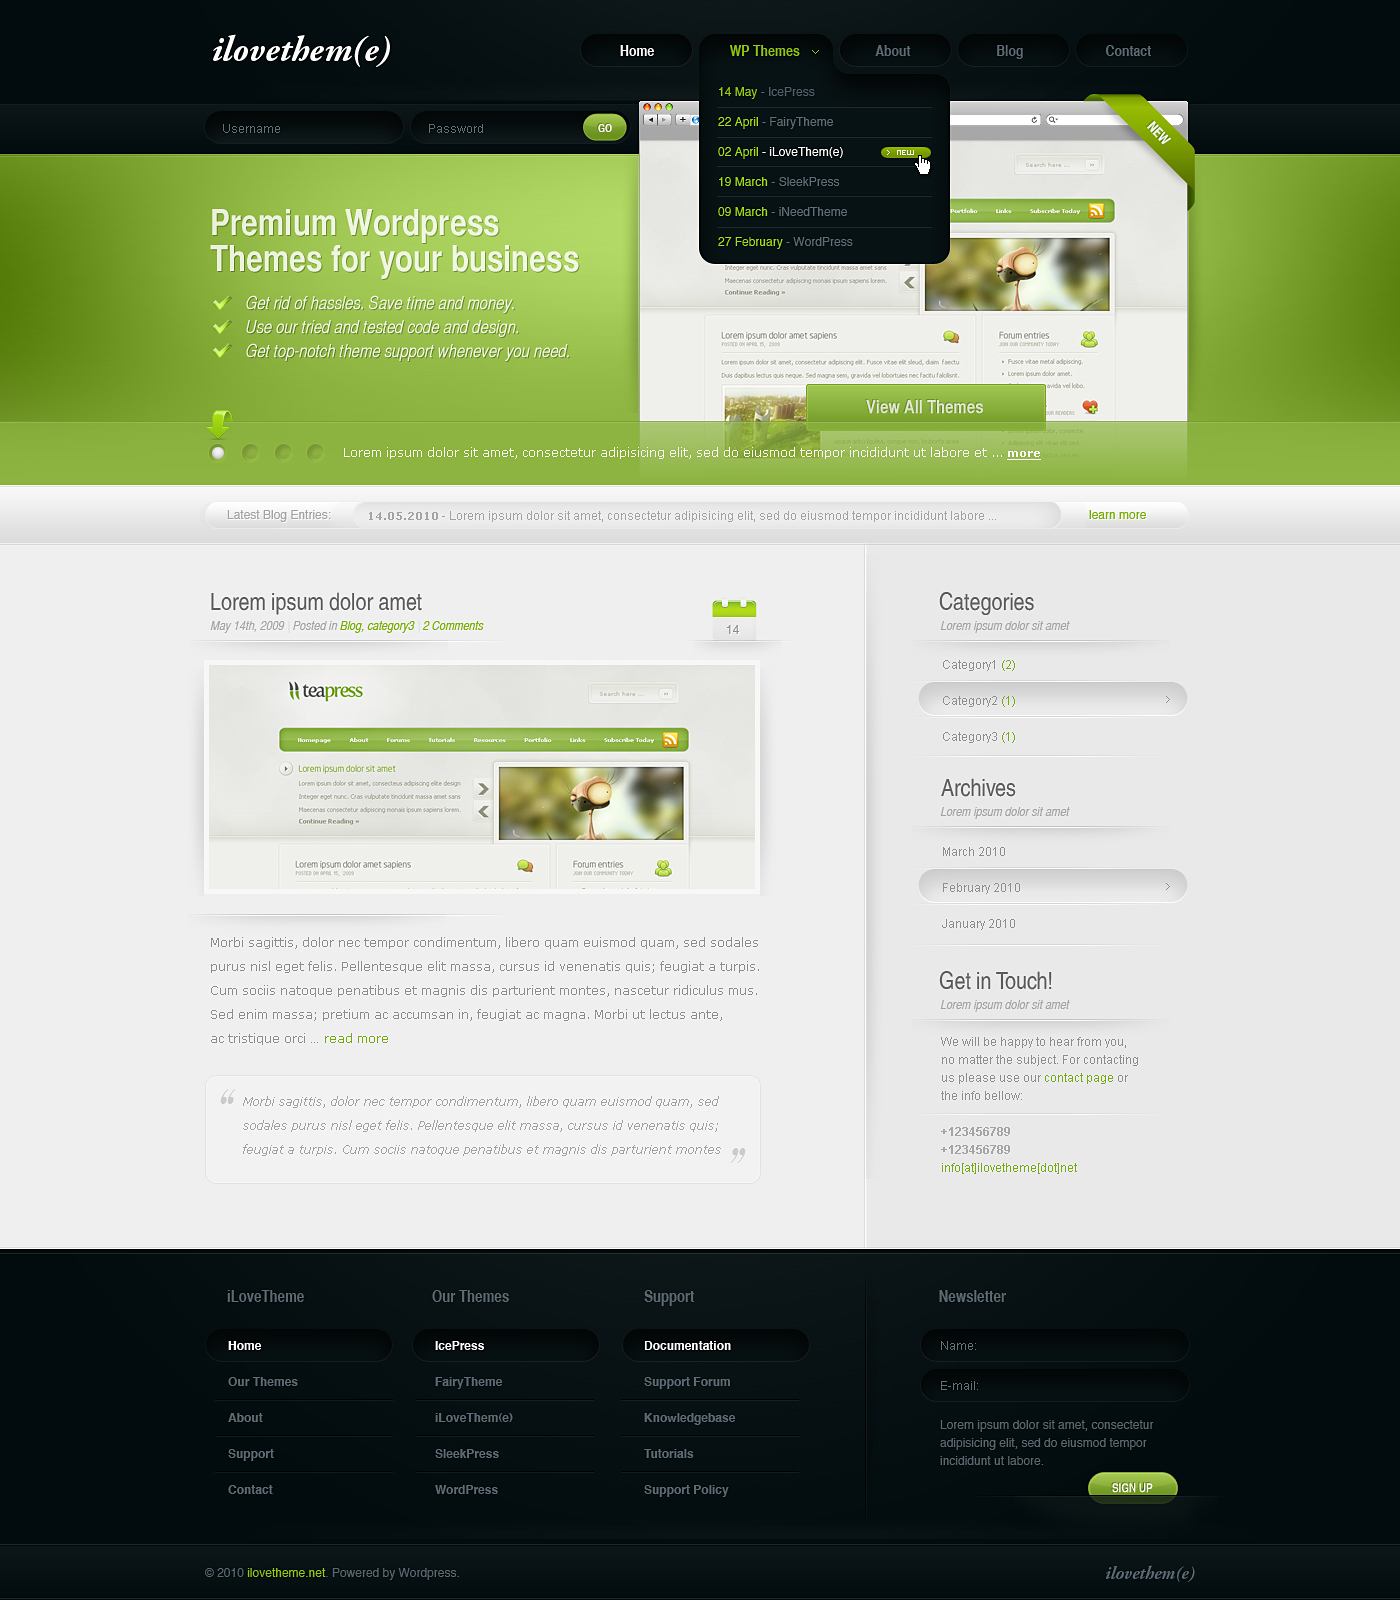 iLoveTheme - WordPress Theme by detrans